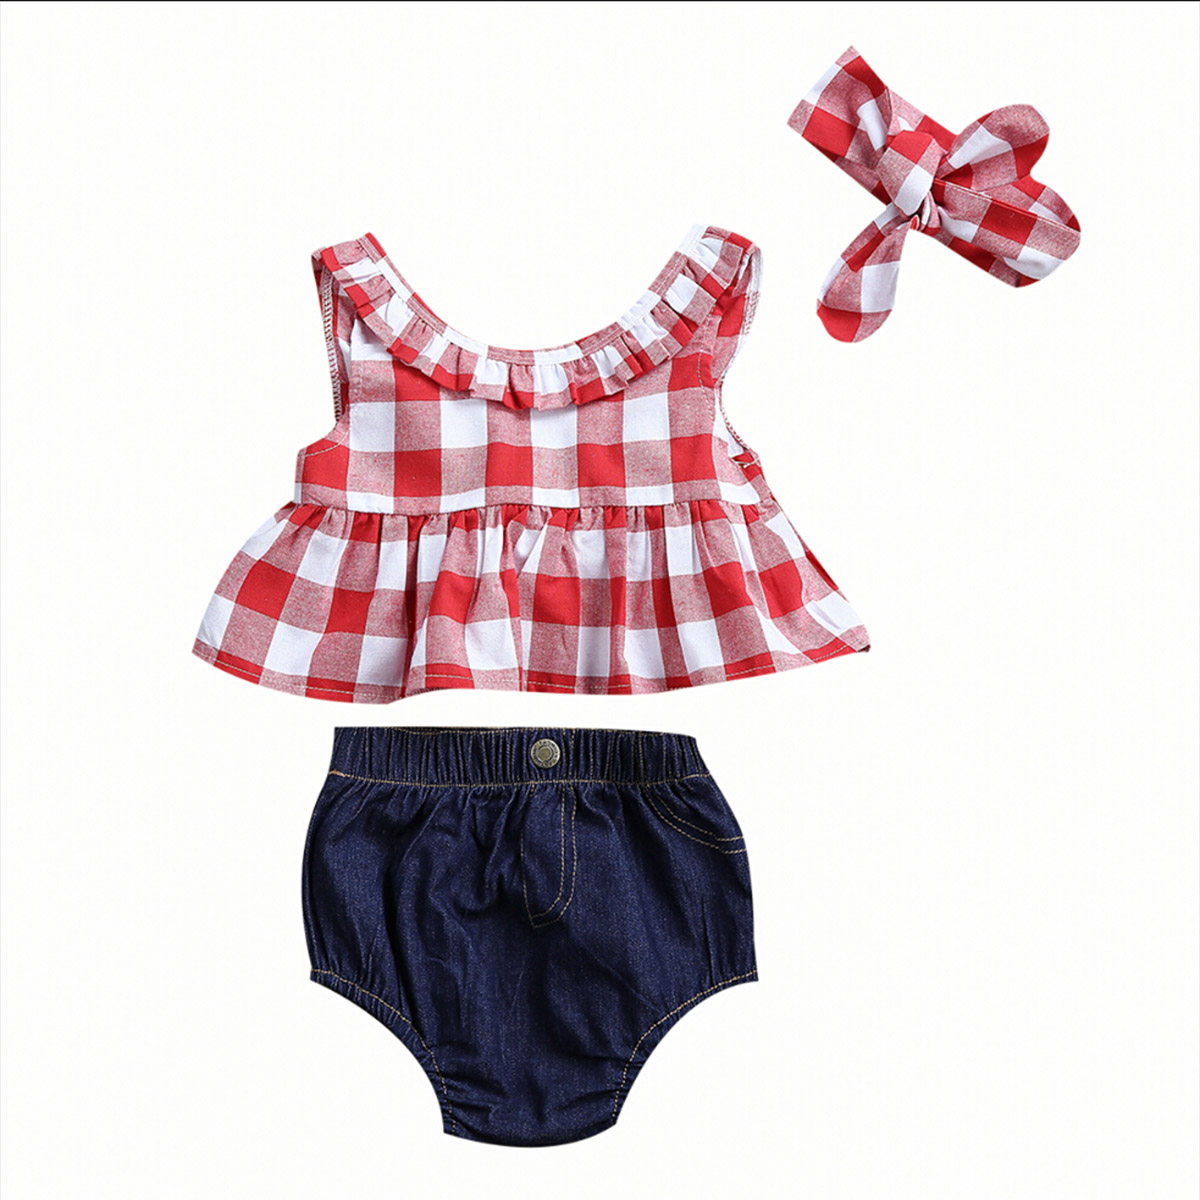 3PCS Toddler Kids Clothes 2017 Summer Red Plaid Skirted T-shirt Tops+Denim Shorts Bloomers Headband Outfit Children Clothing Set 2017 new fashion kids clothes off shoulder camo crop tops hole jean denim pant 2pcs outfit summer suit children clothing set